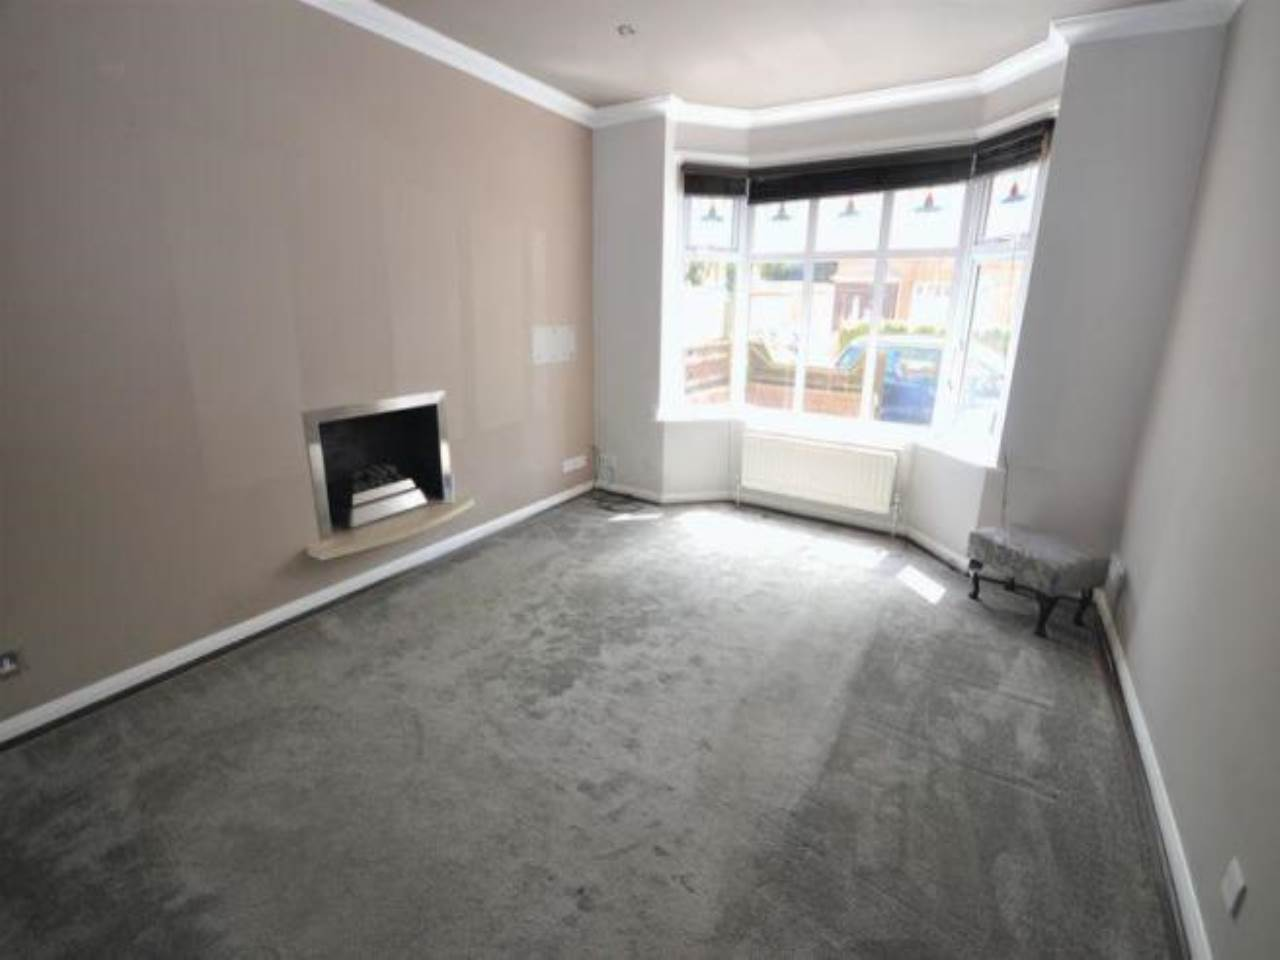 4 bed house for sale in Cowper Road, Moordown  - Property Image 7